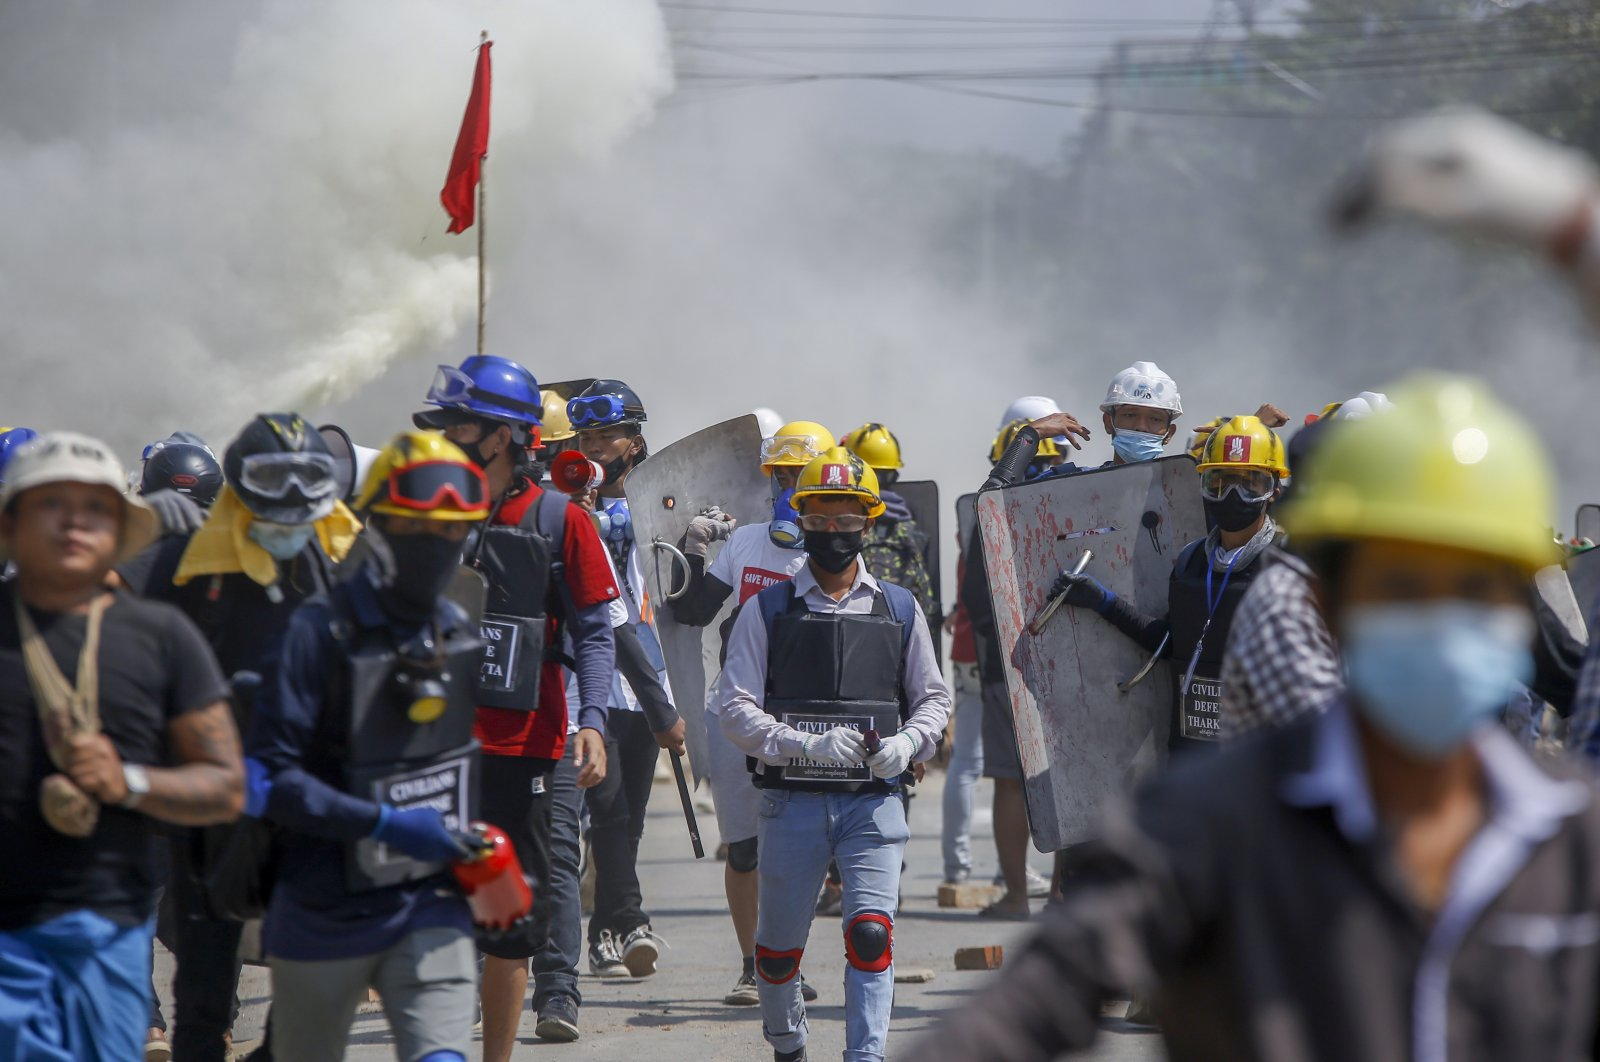 Anti-coup protesters retreat from the frontlines after discharging fire extinguishers toward a line of riot policemen in Yangon, Myanmar Wednesday, March 10, 2021. (AP Photo)